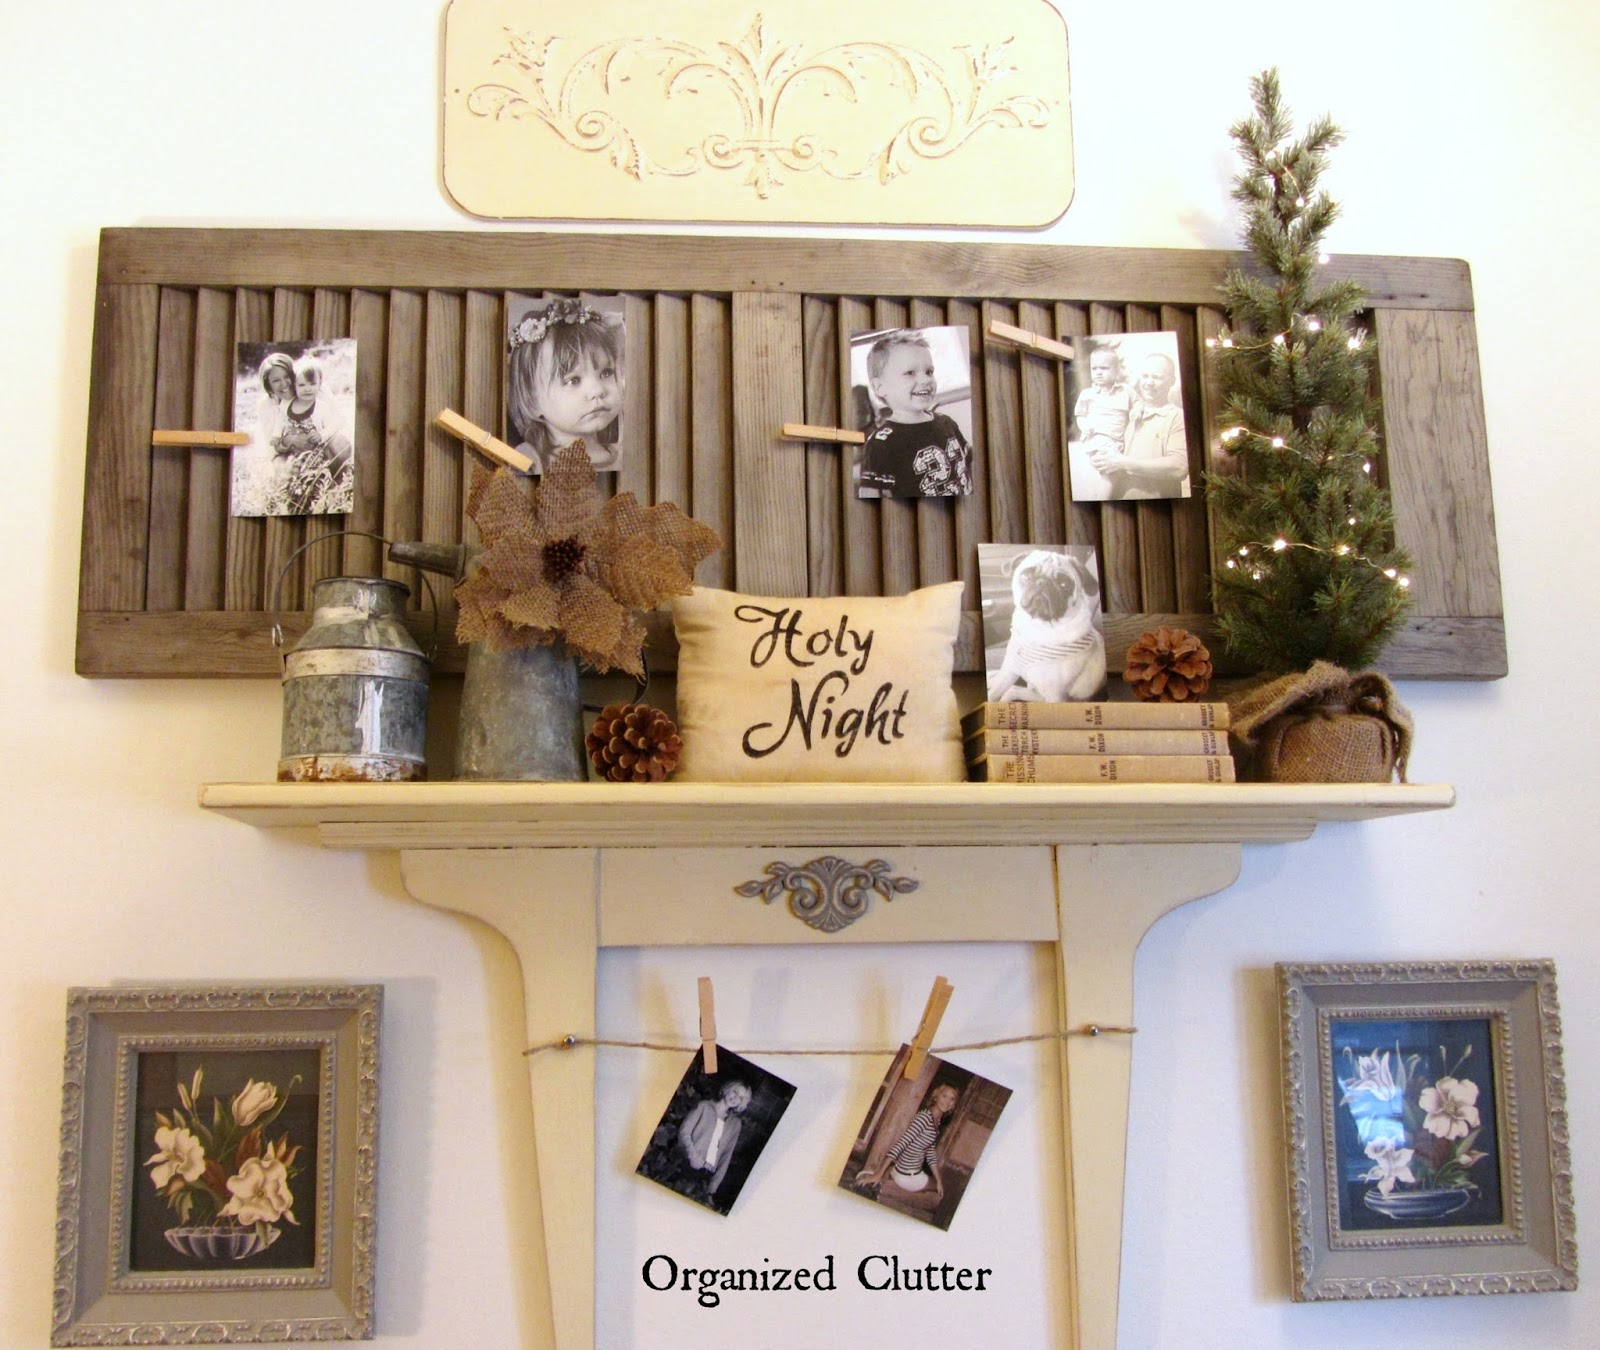 Shutter Photo Holder & Re-purposed Dresser Mirror Shelf www.organizedclutterqueen.blogspot.com